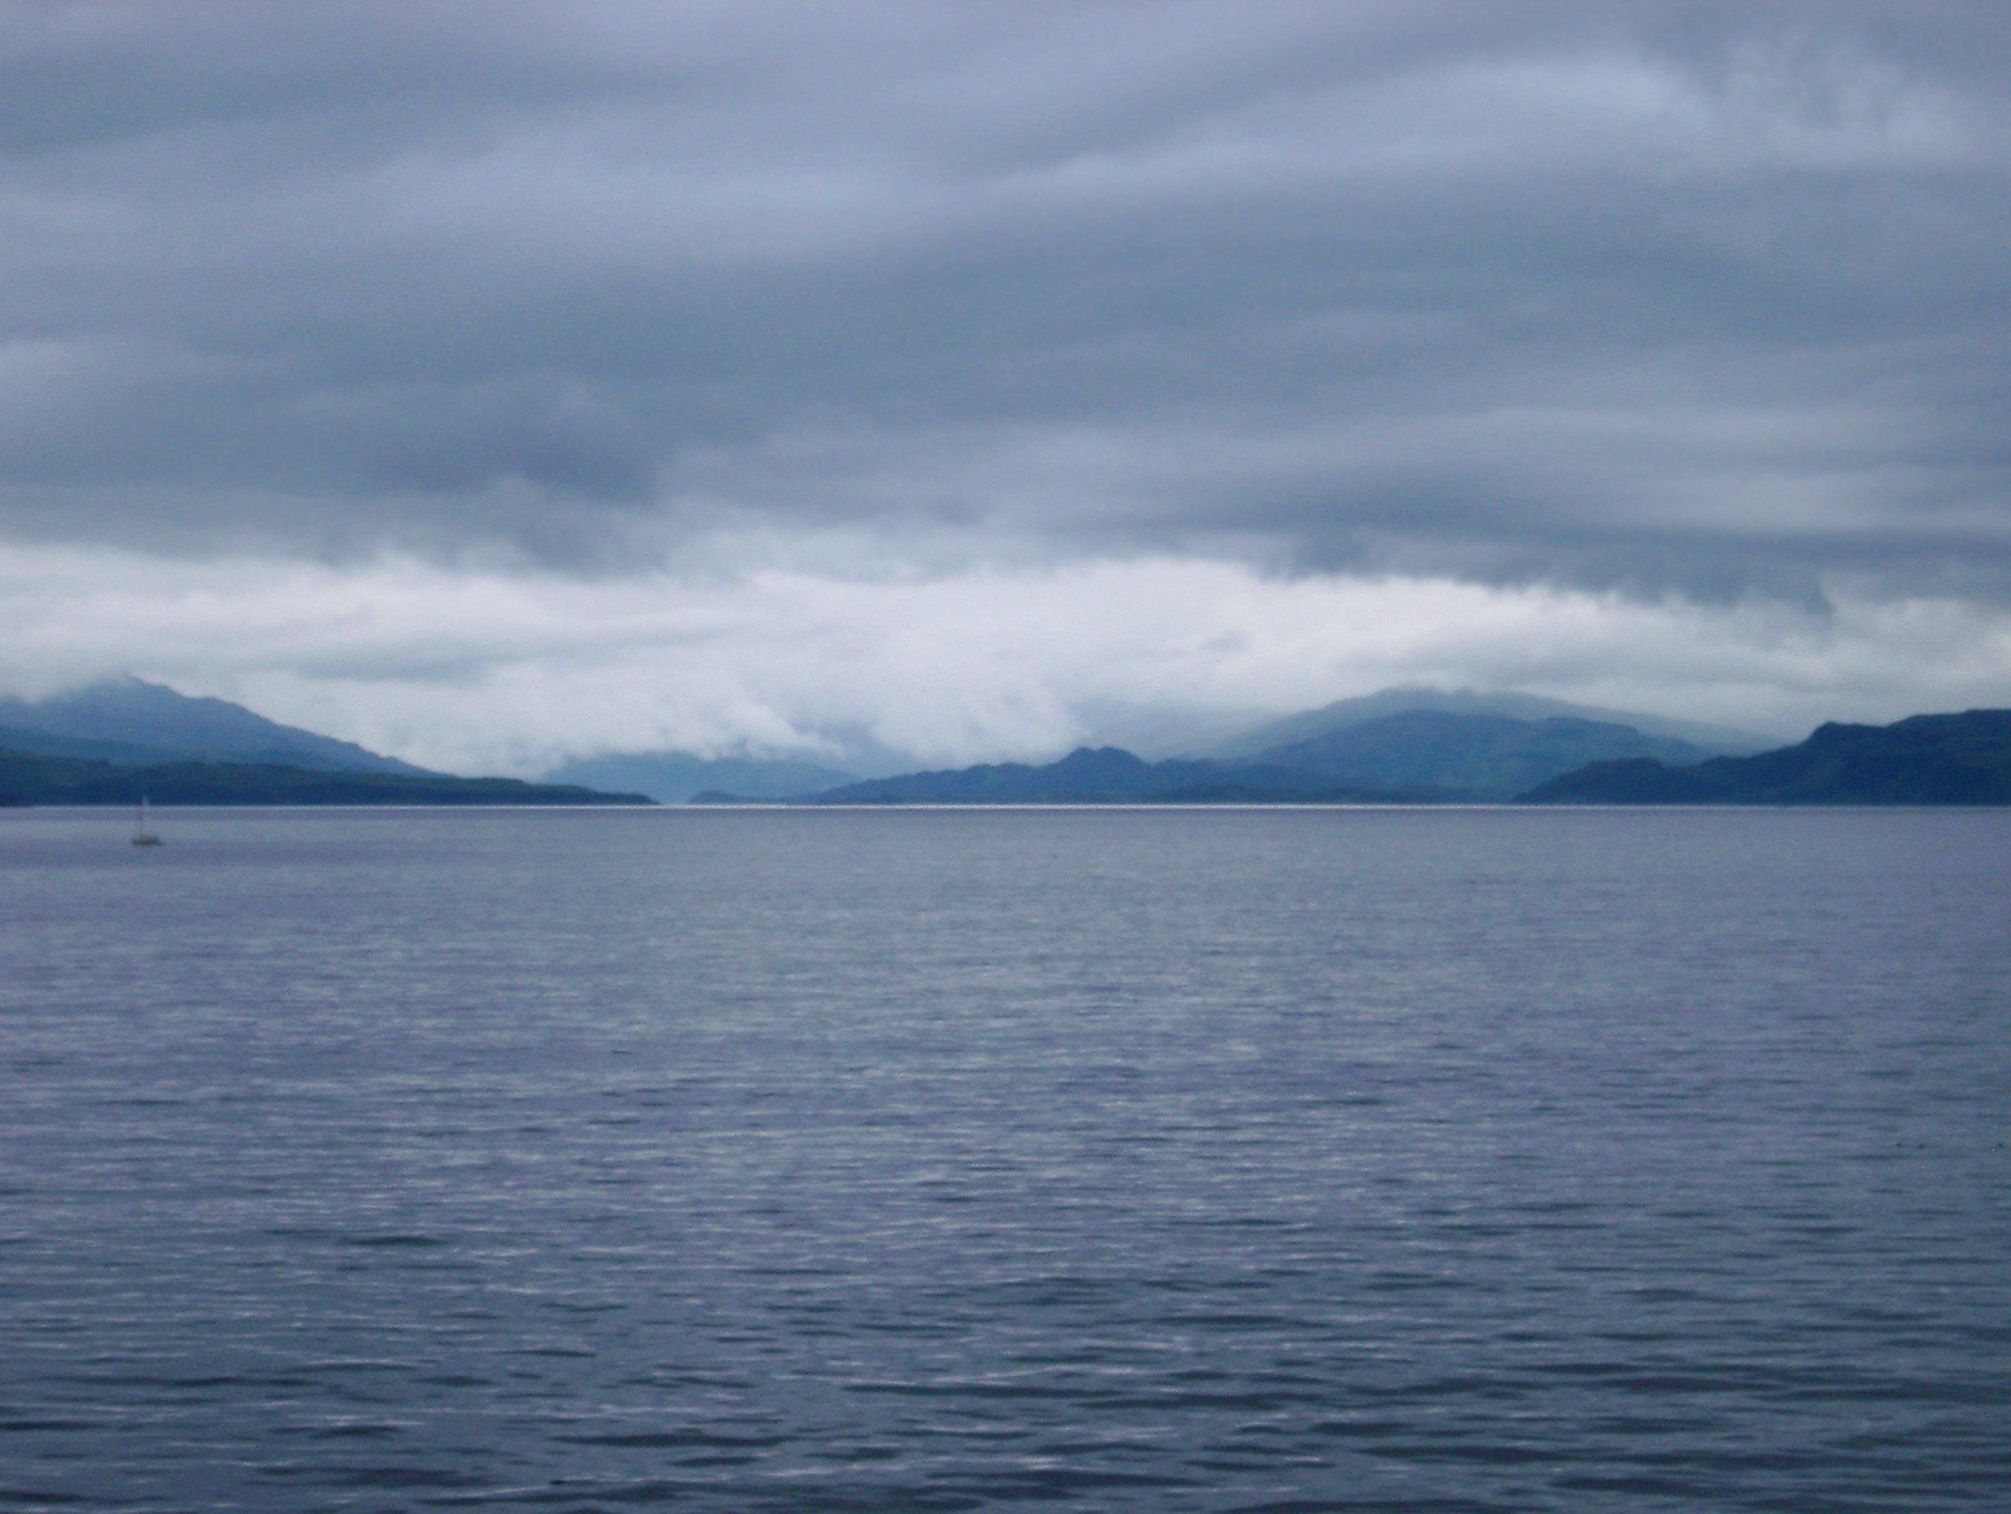 View over a calm ocean on a stormy overcast day of Scottish lochs and distant mountains